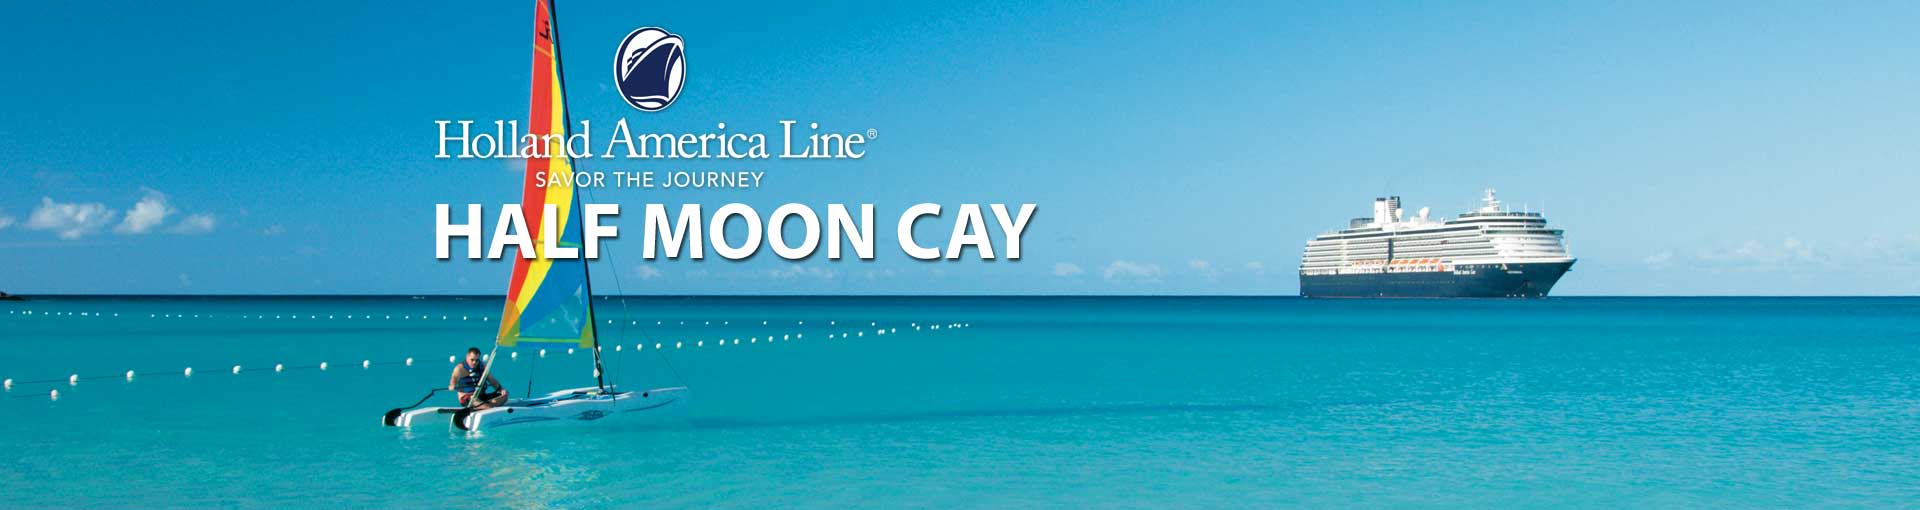 Holland America's Half Moon Cay